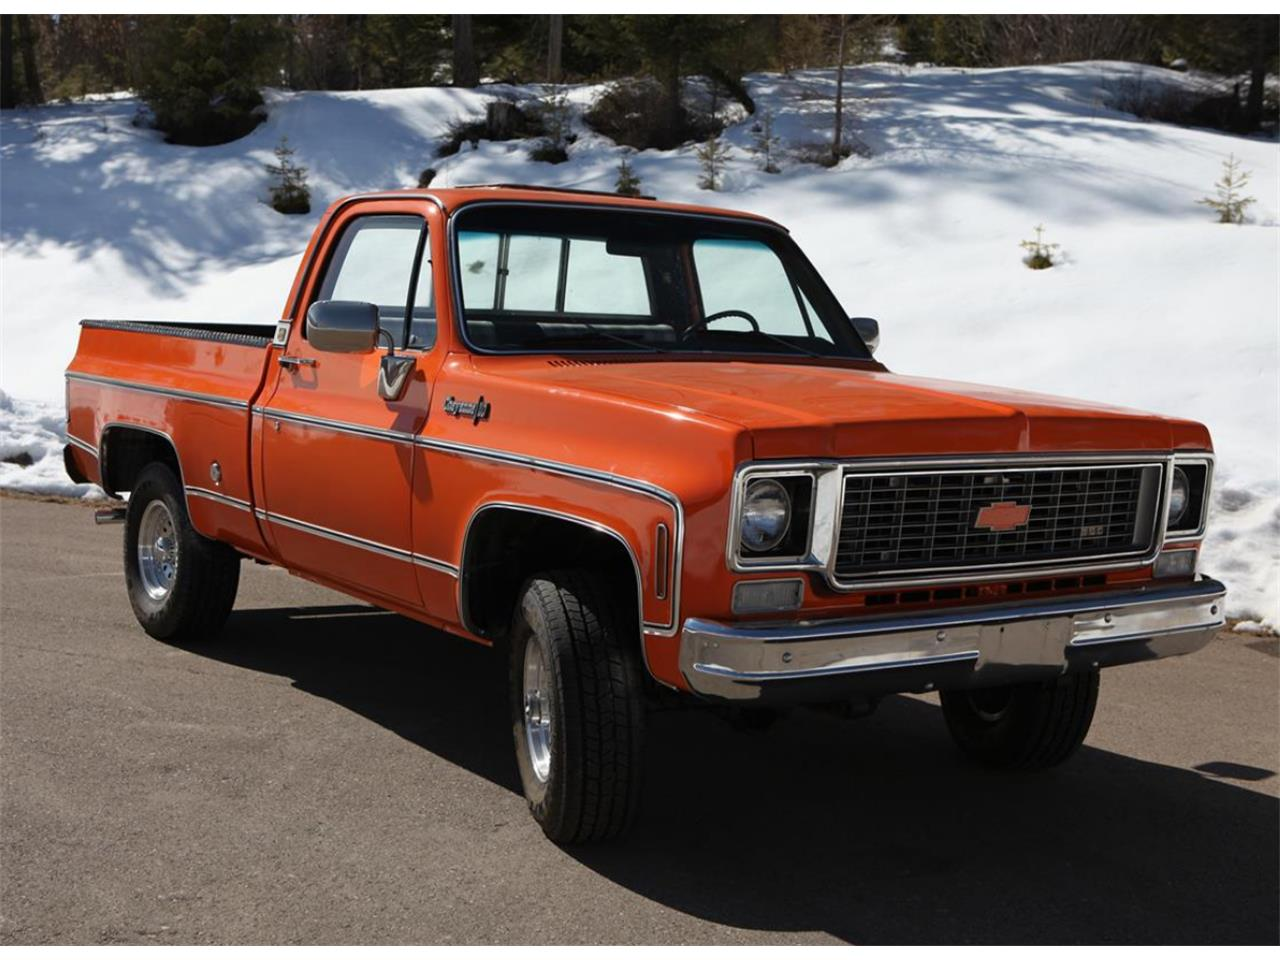 1974 Chevrolet Cheyenne (CC-1203193) for sale in Lakeside, Montana